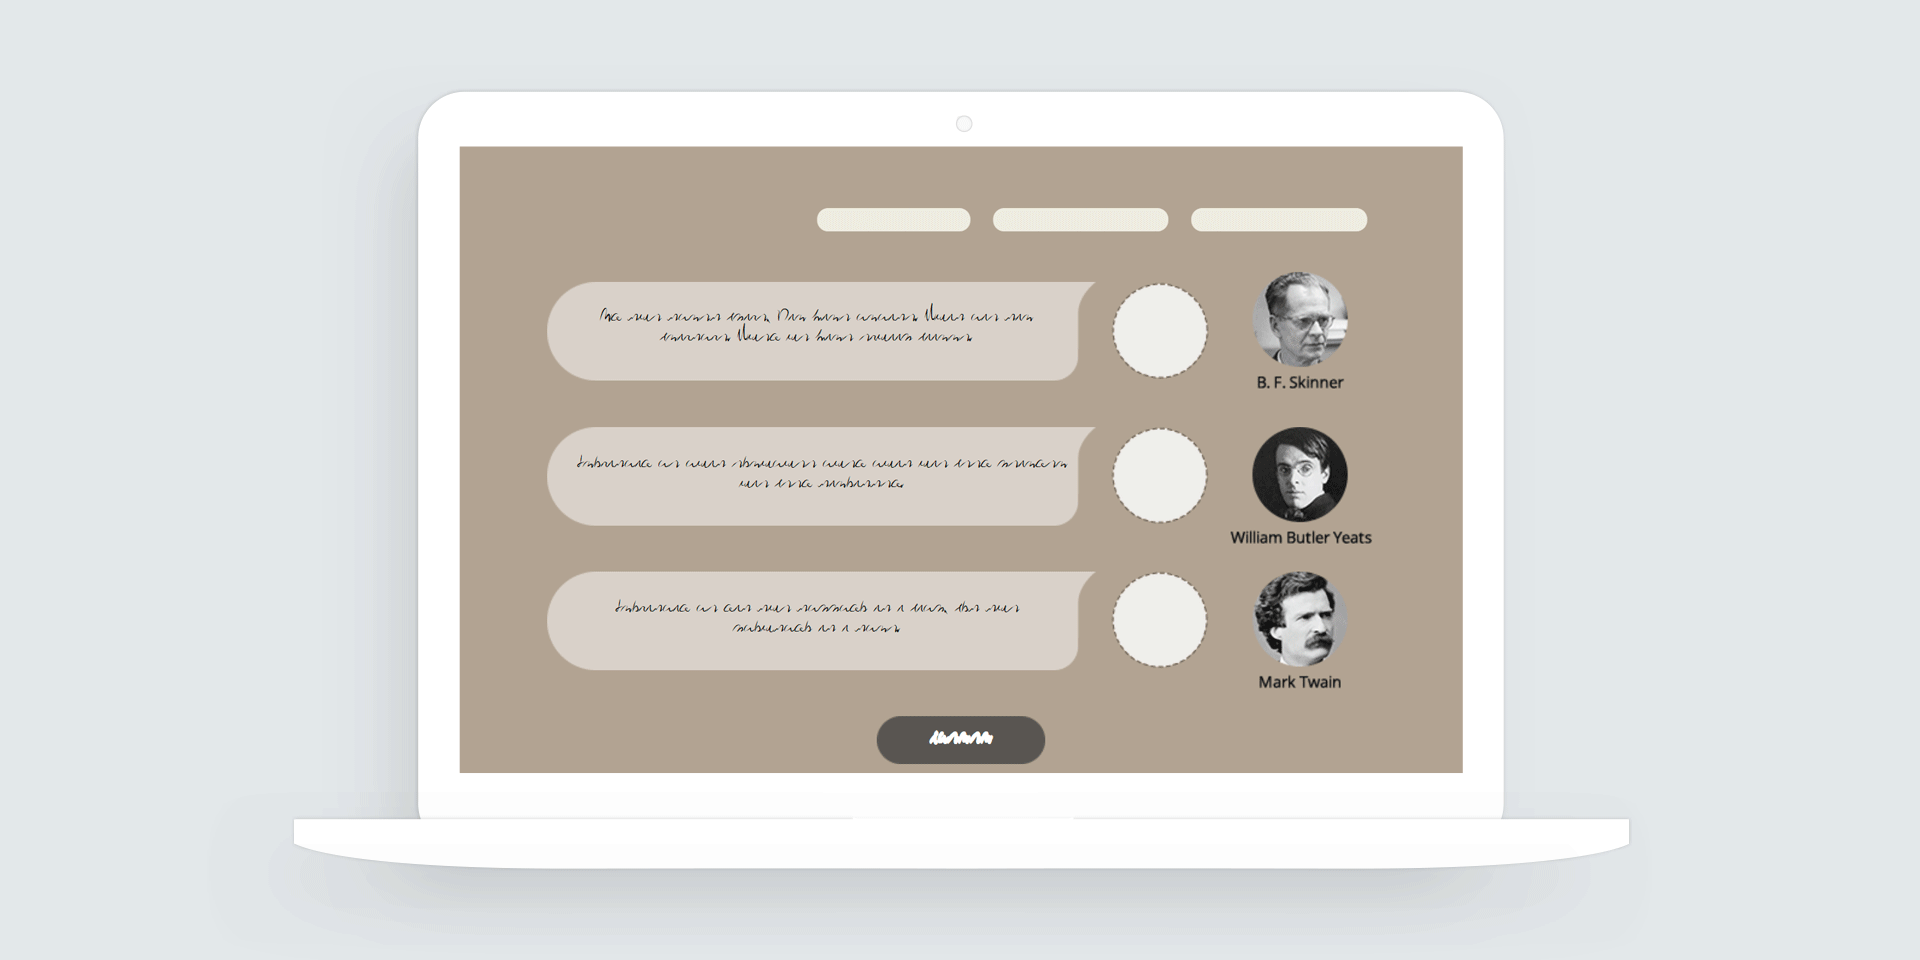 Storyline 360: Drag-and-Drop Quotes Challenge